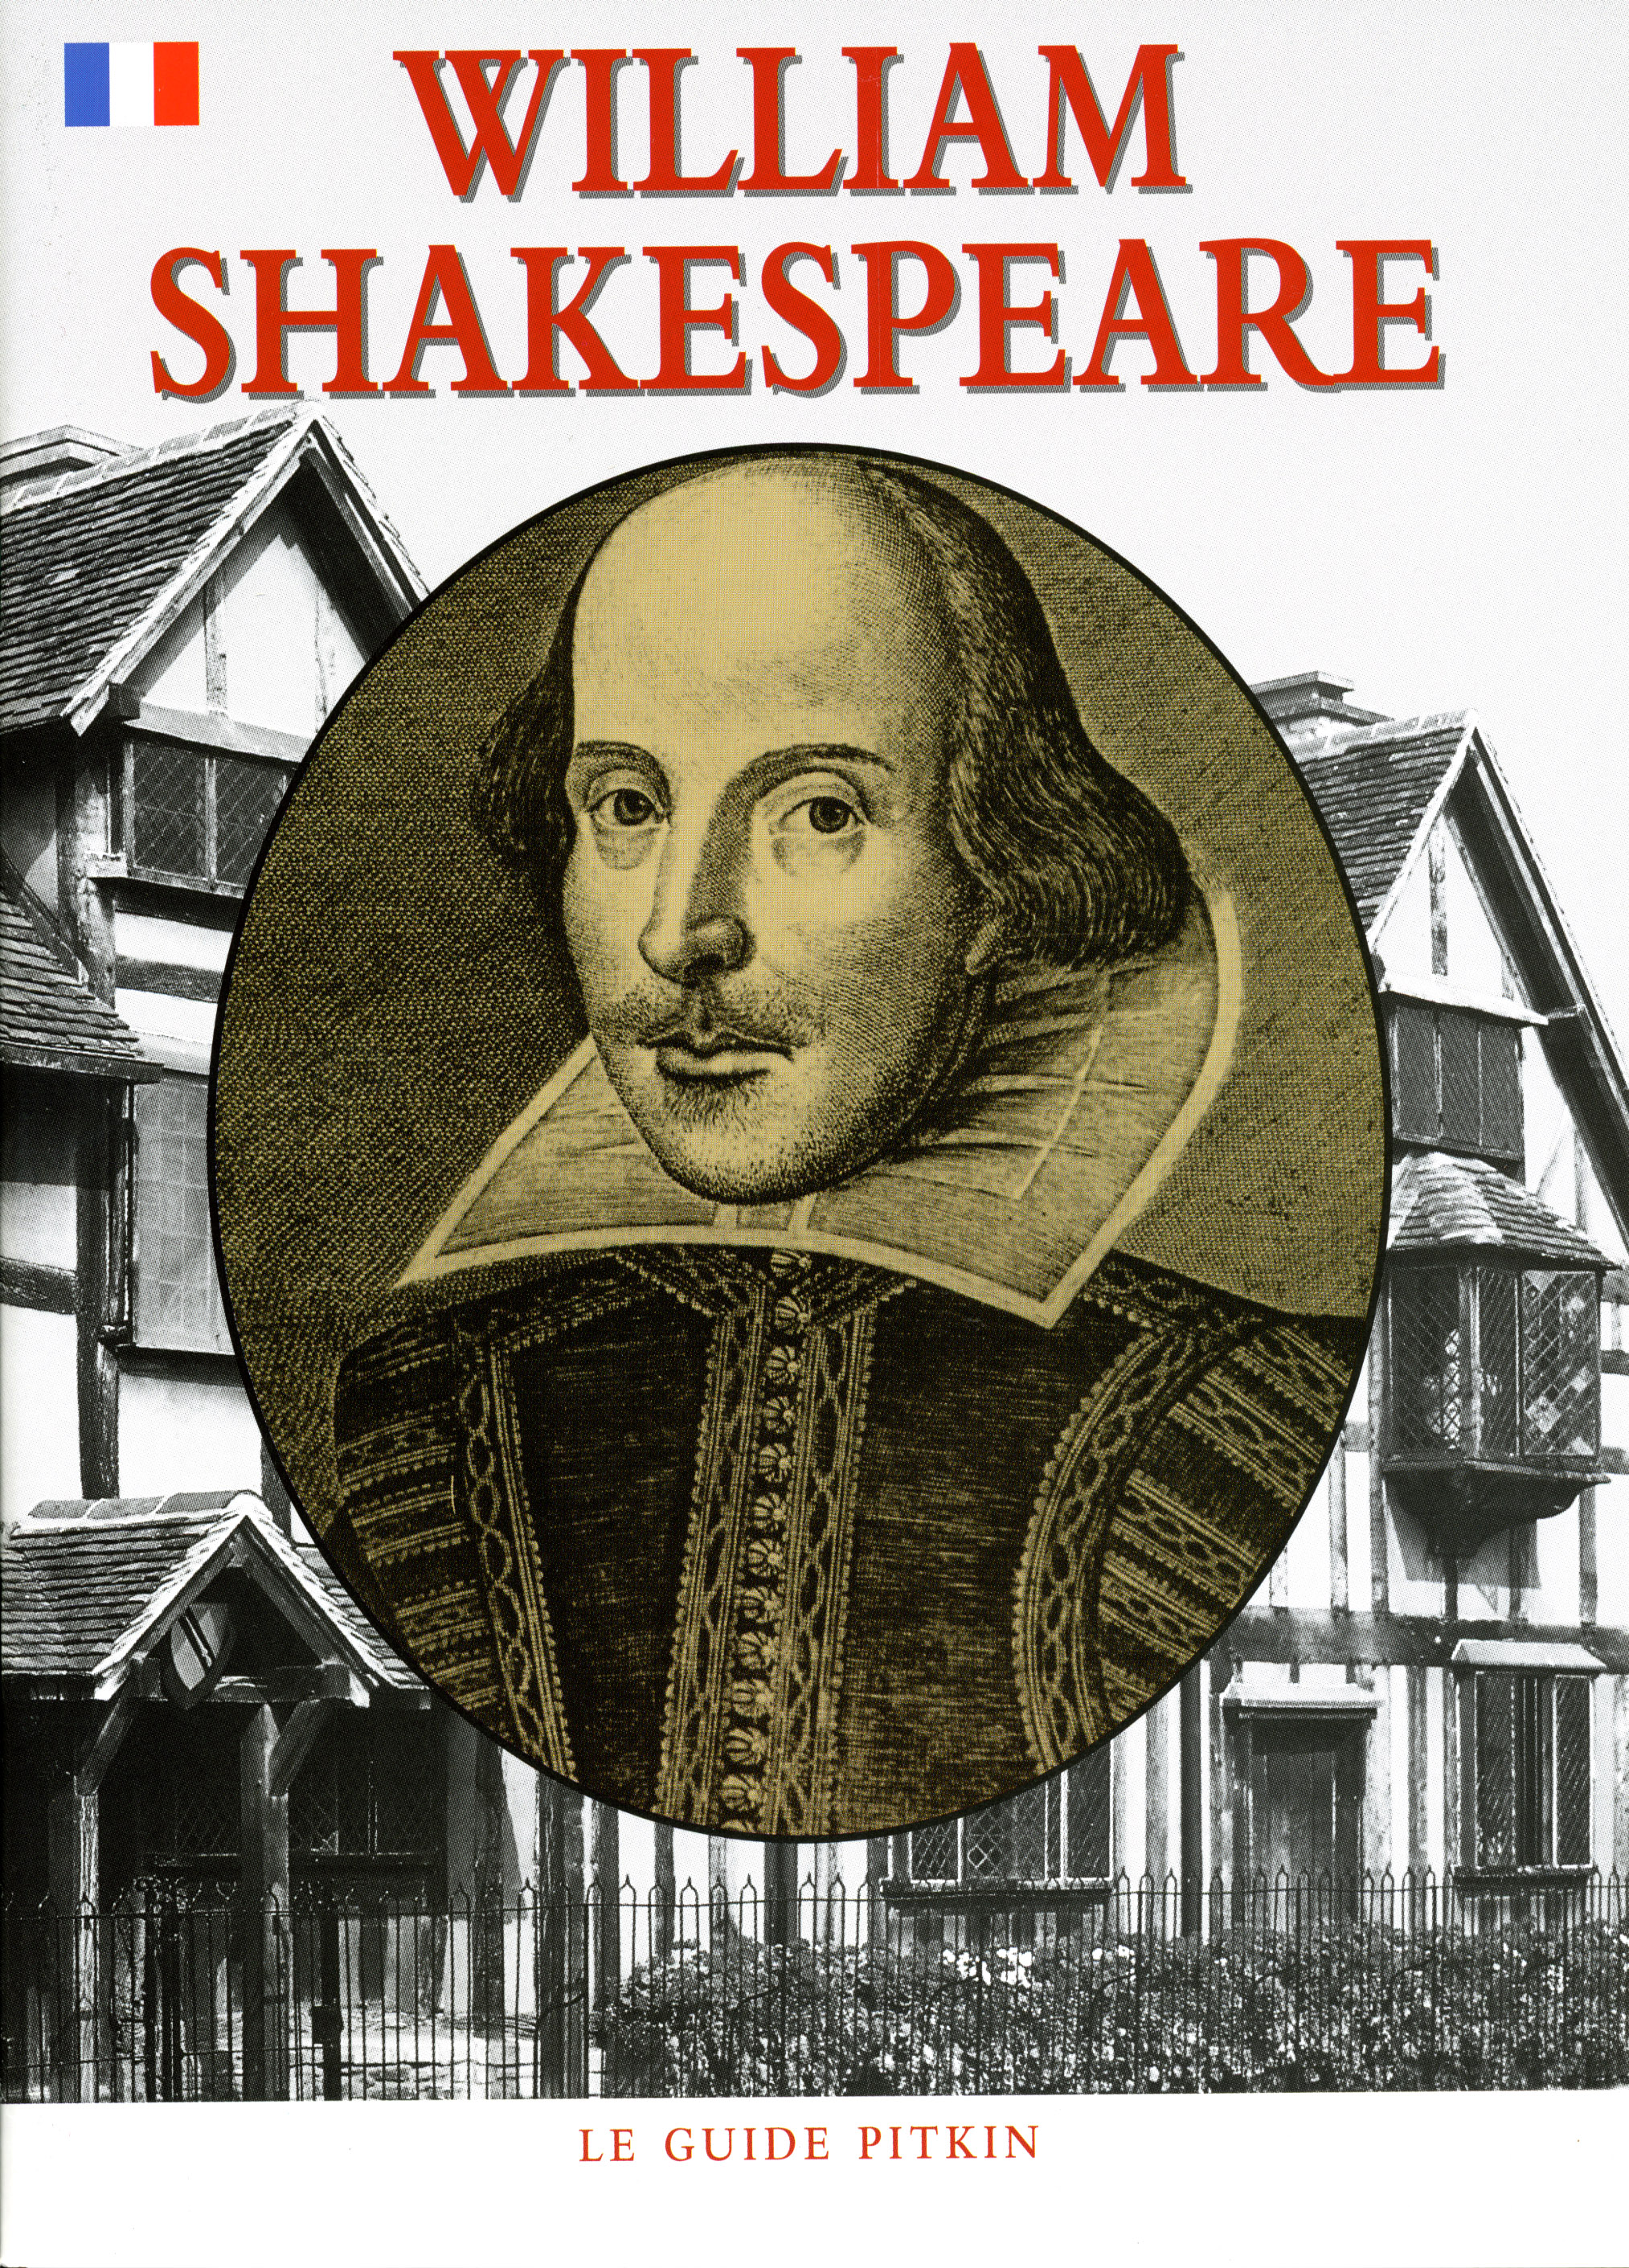 William Shakespeare – French